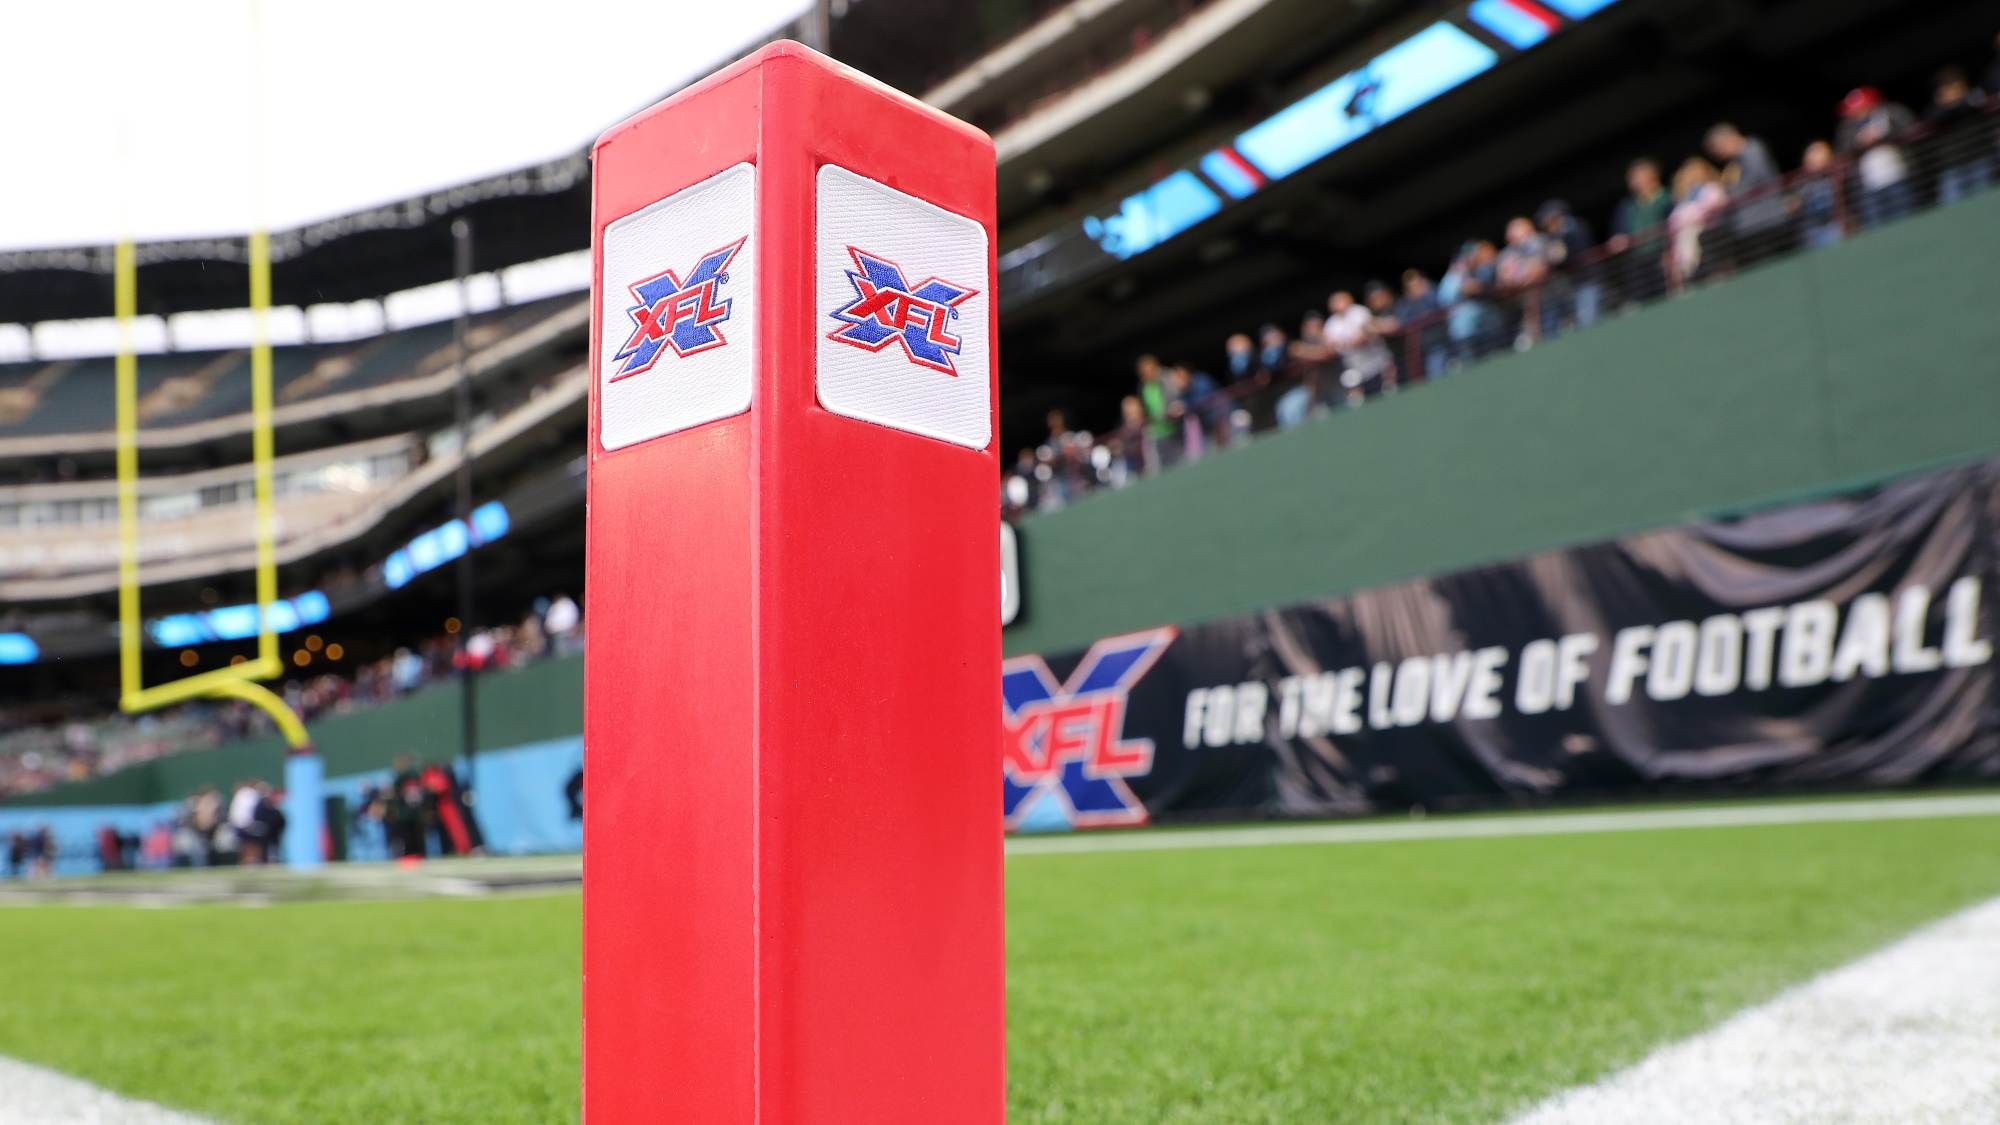 Live stream XFL: how to watch the new football league online from anywhere